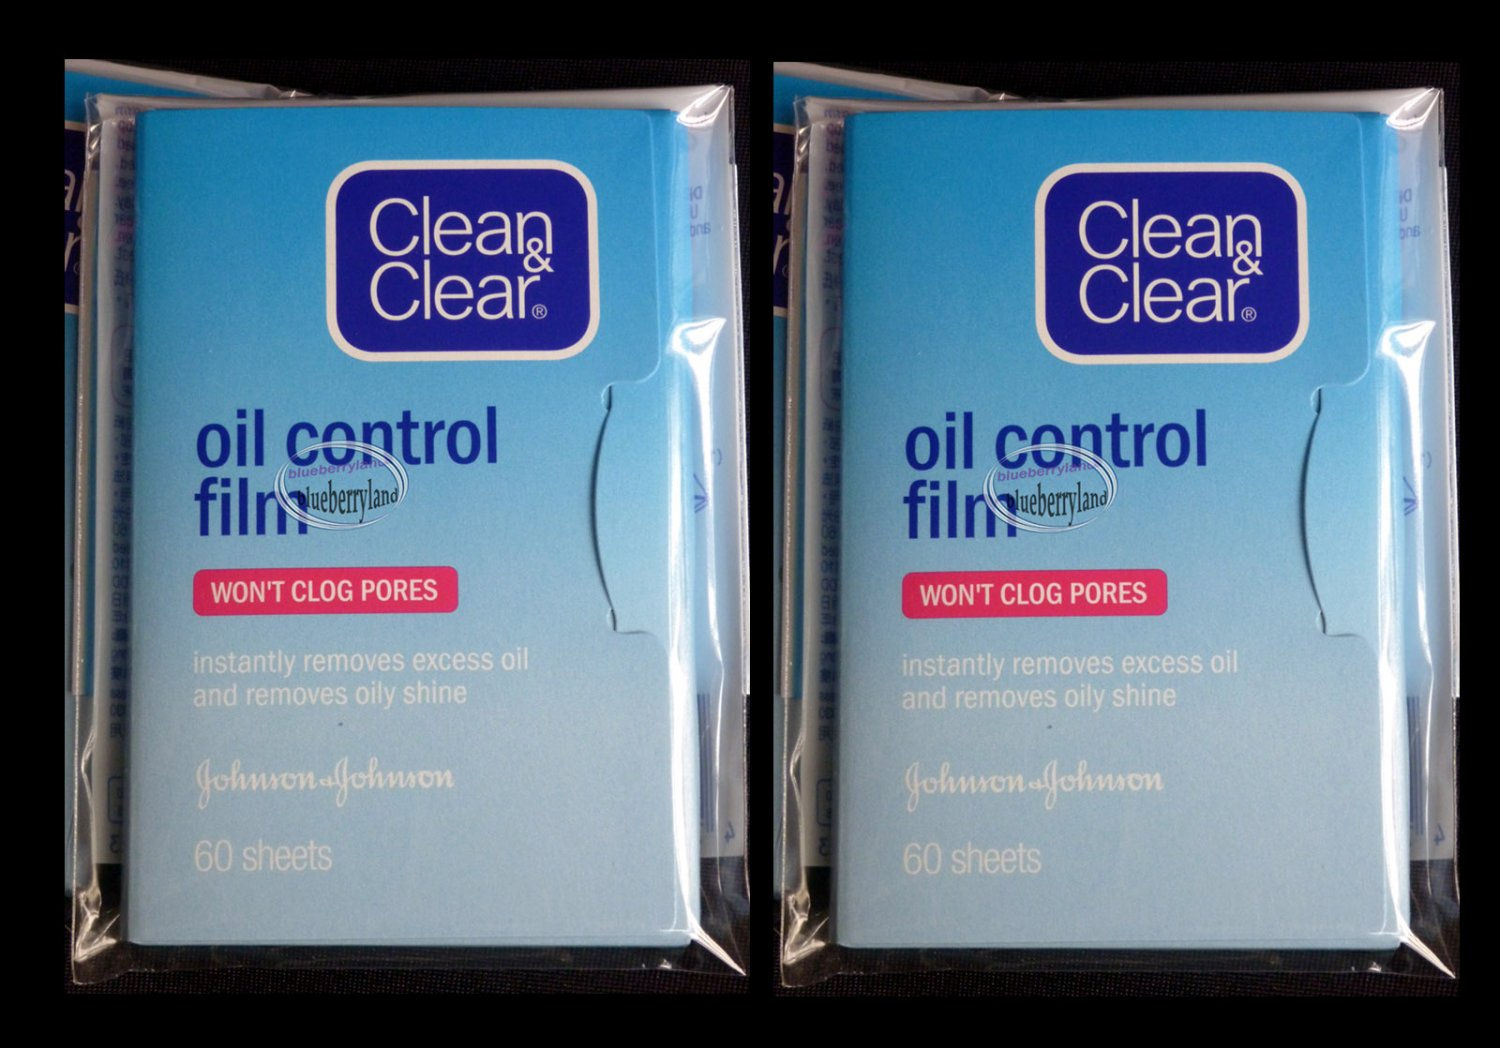 Clean & Clear feuillets absorbeurs d'huiles anti-sebum Oil Absorbing 120 Sheets